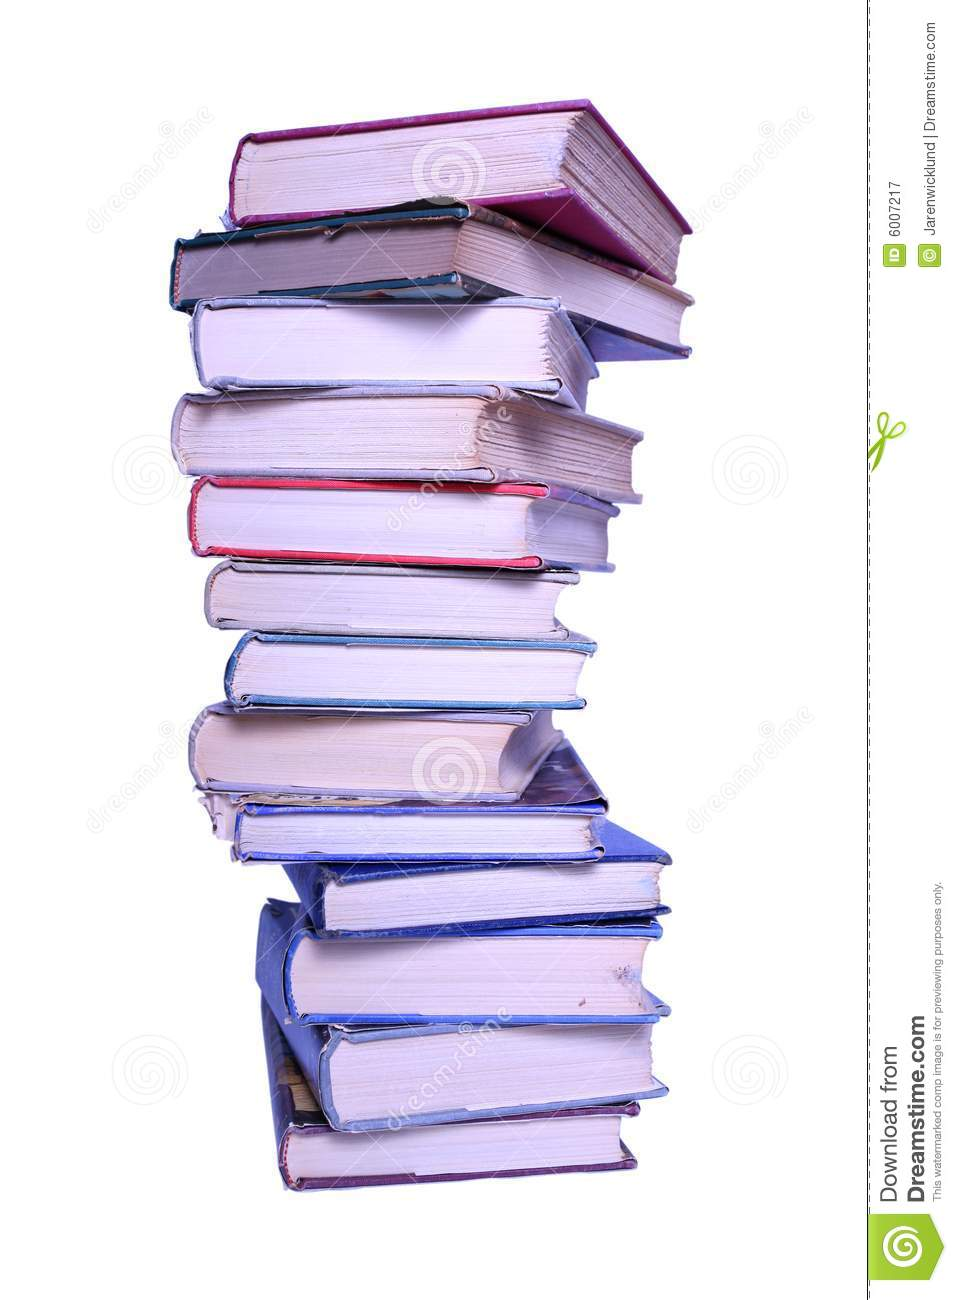 tall stack of books clip art | clipart panda - free clipart images